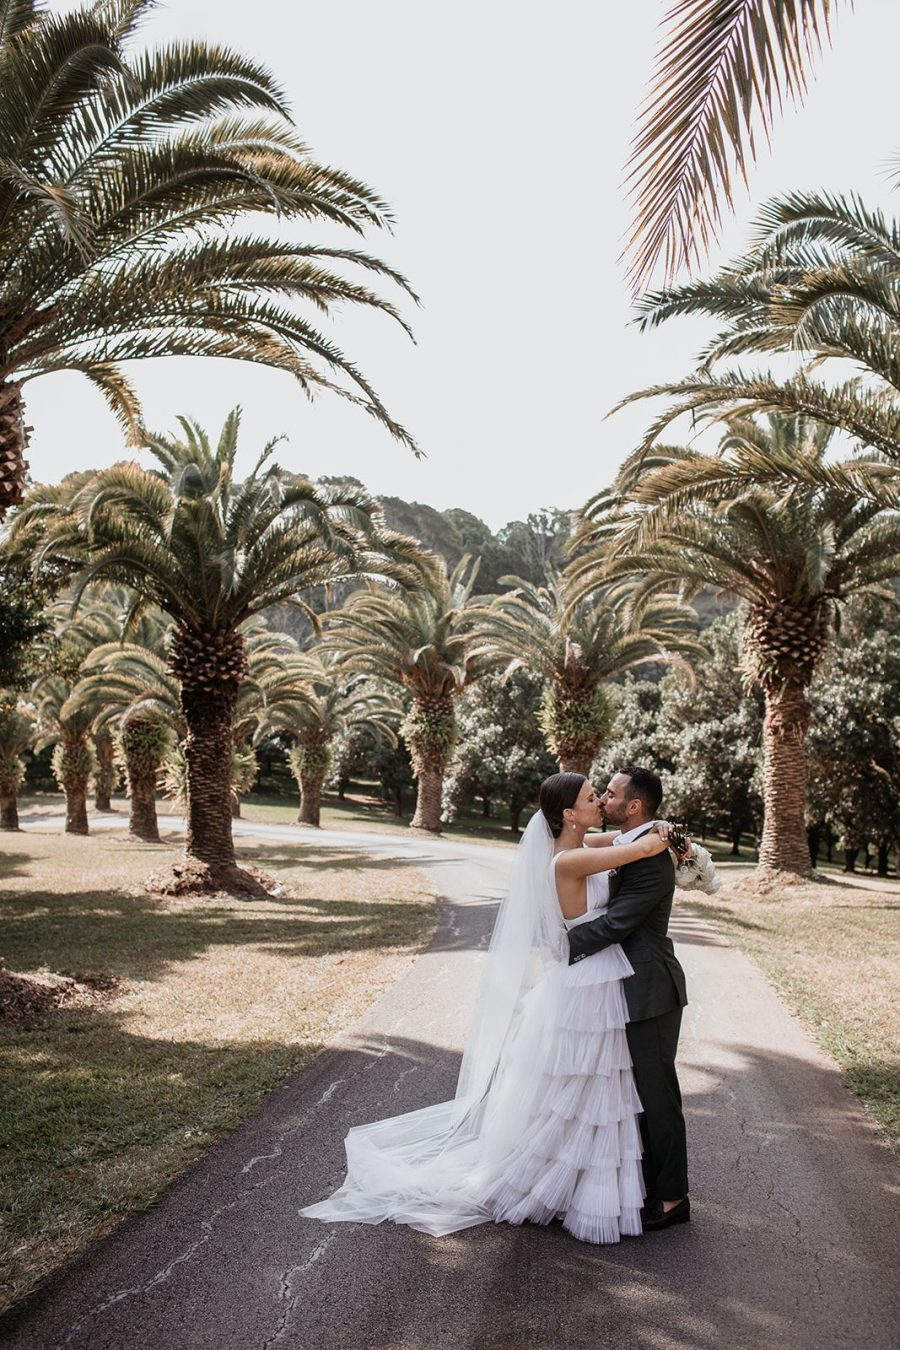 Bride and groom kiss in front of driveway with palm trees.